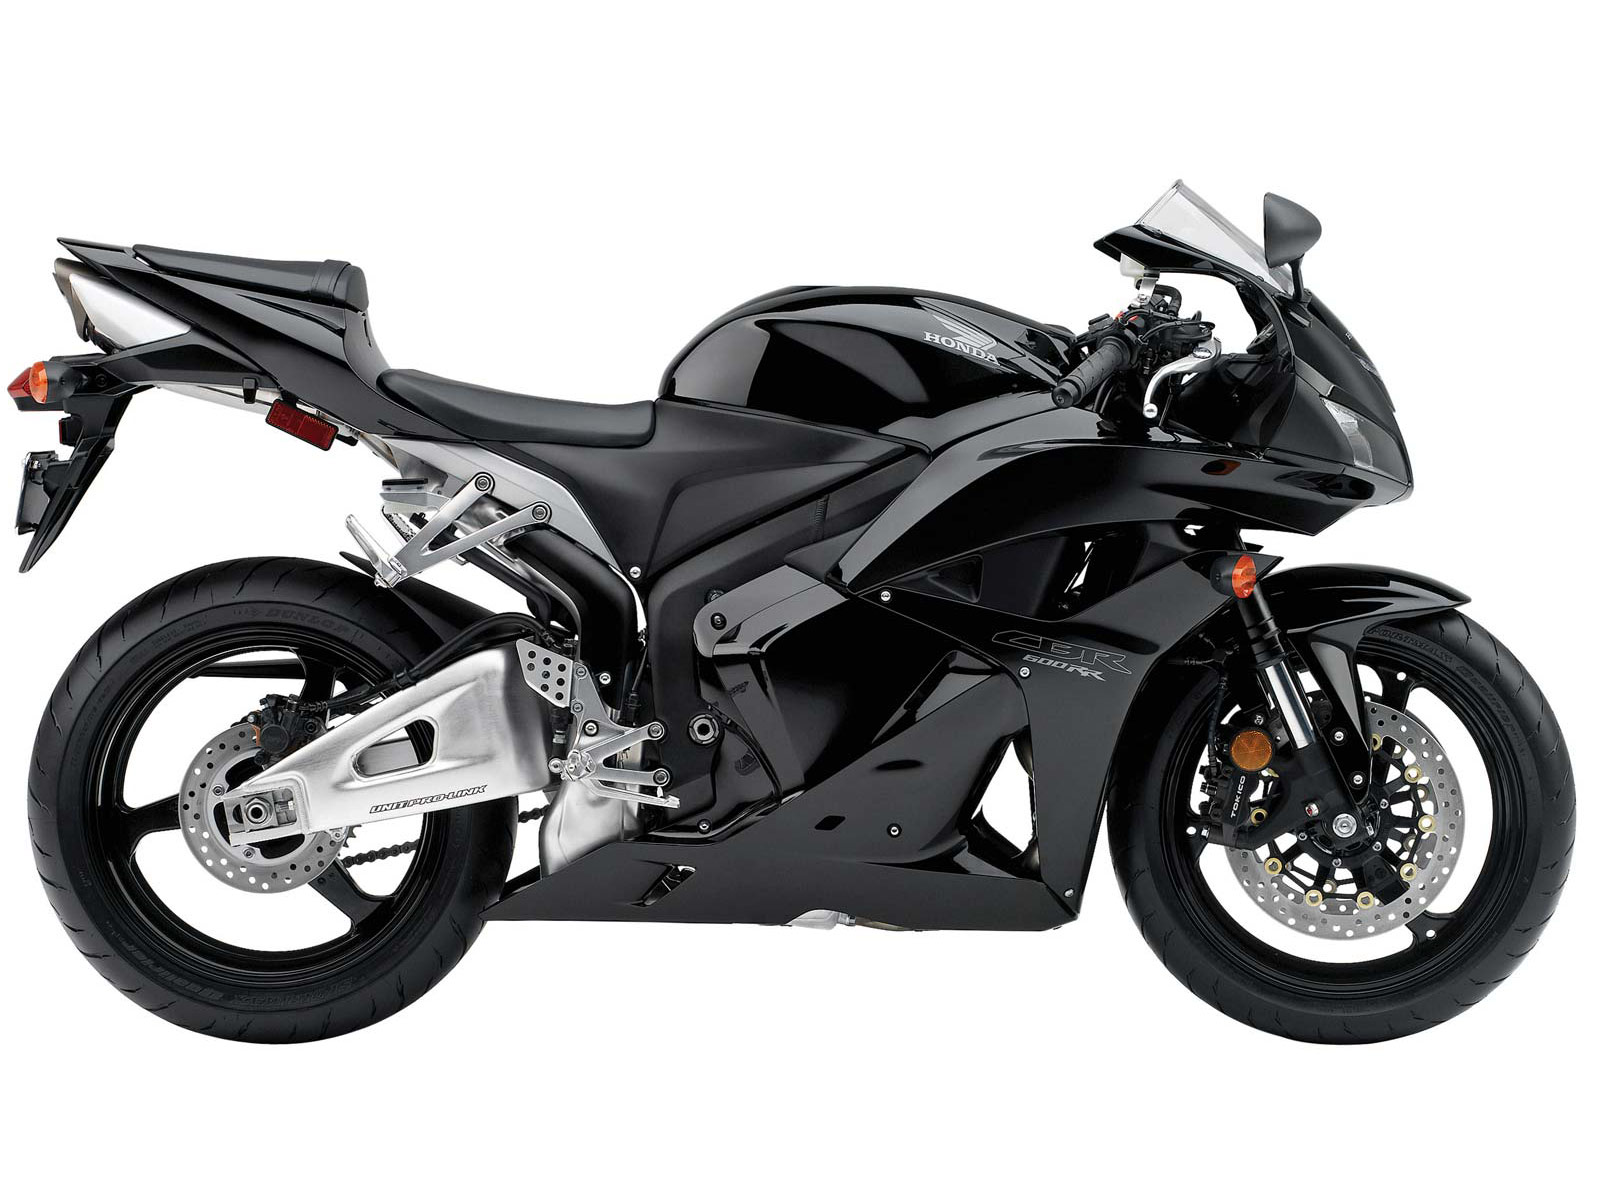 2011 honda cbr600rr wallpaper, specifications